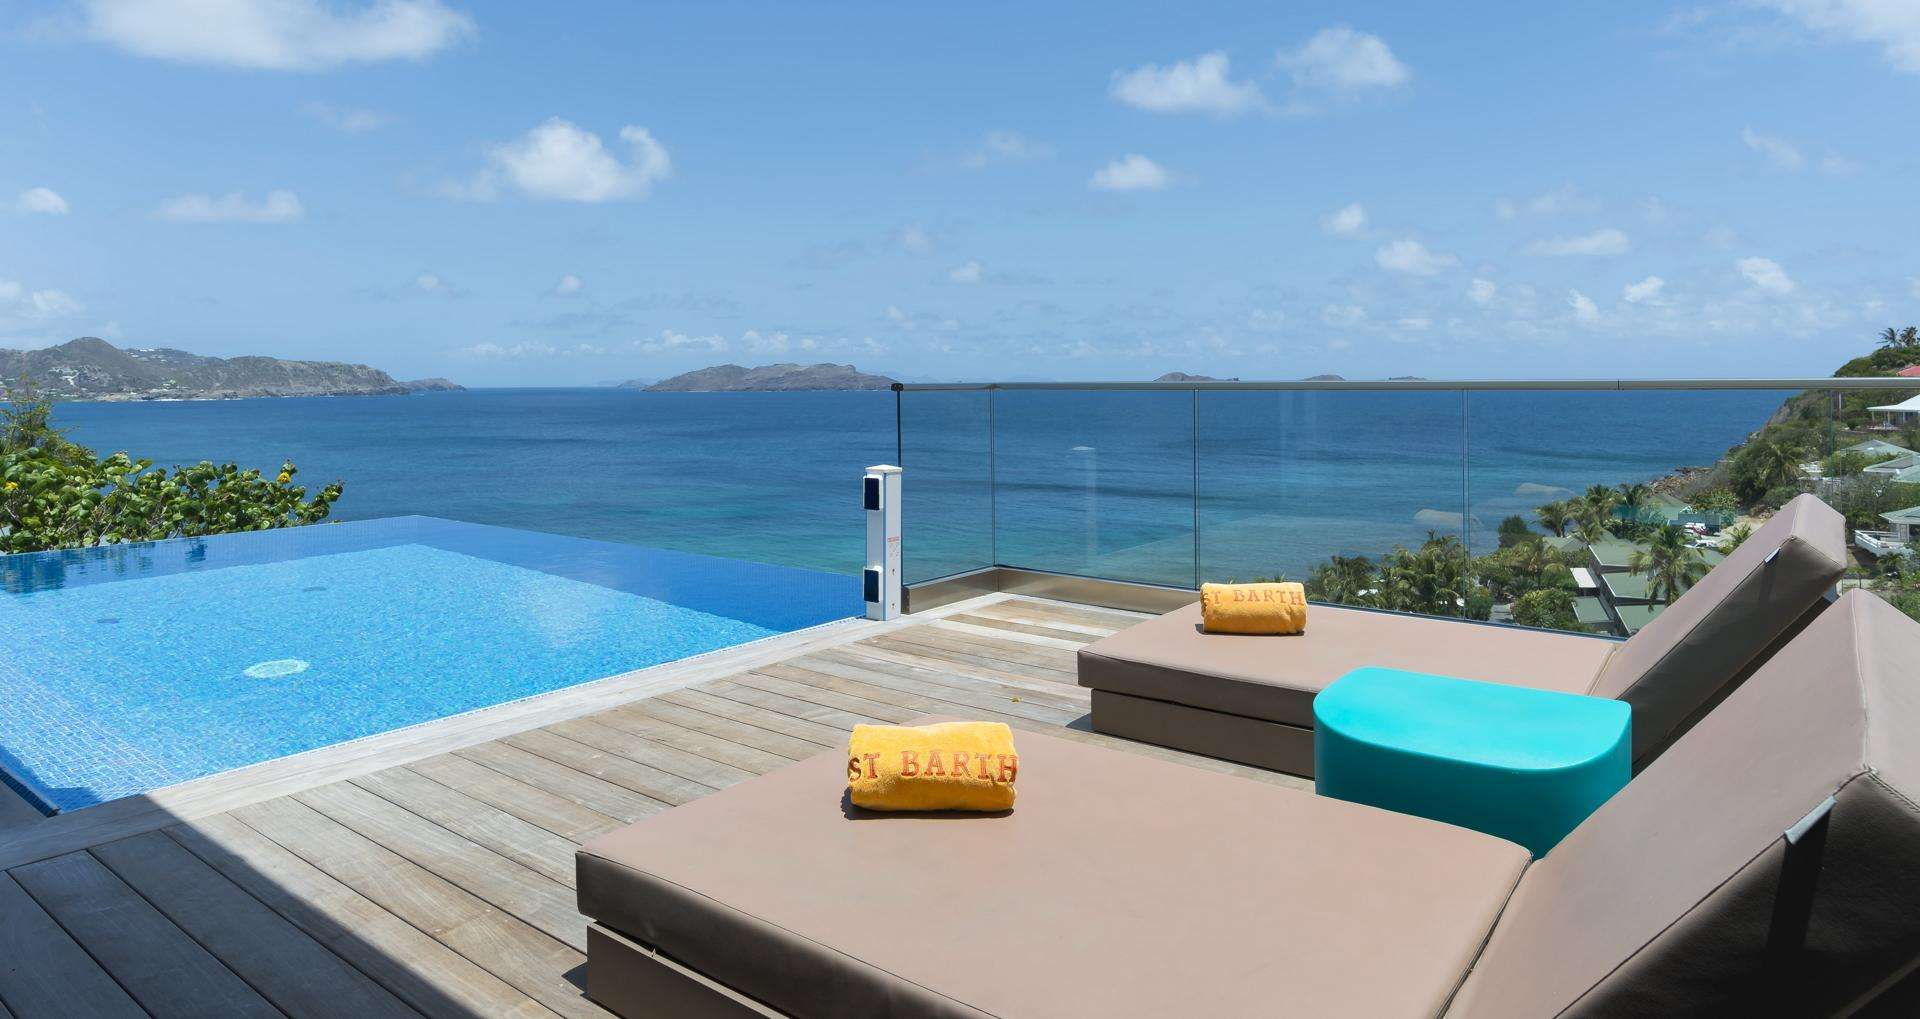 Luxury villa rentals caribbean - St barthelemy - Pointe milou - No location 4 - Upside - Image 1/29